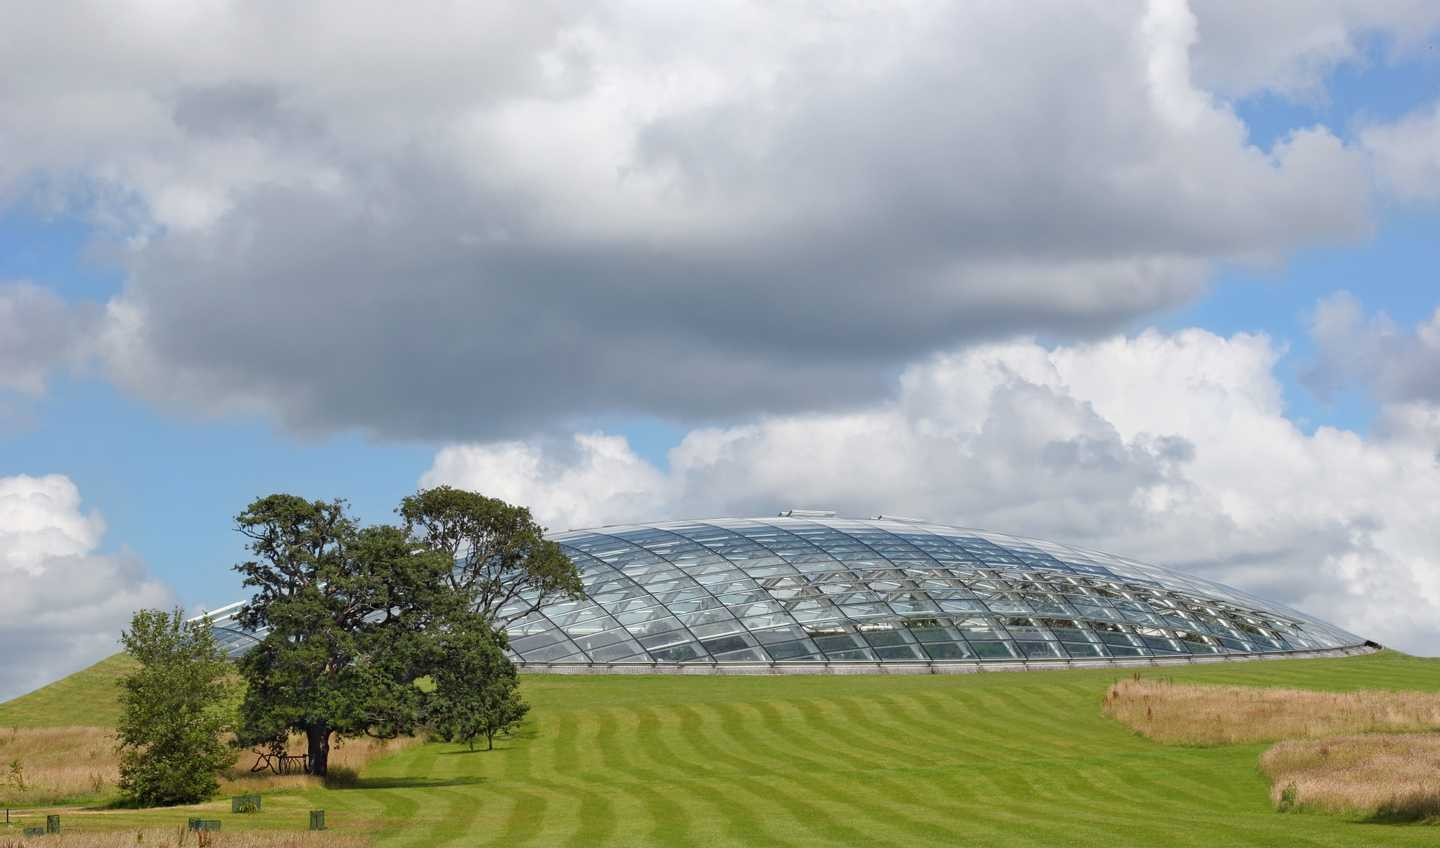 Great Glasshouse surrounded by greenery